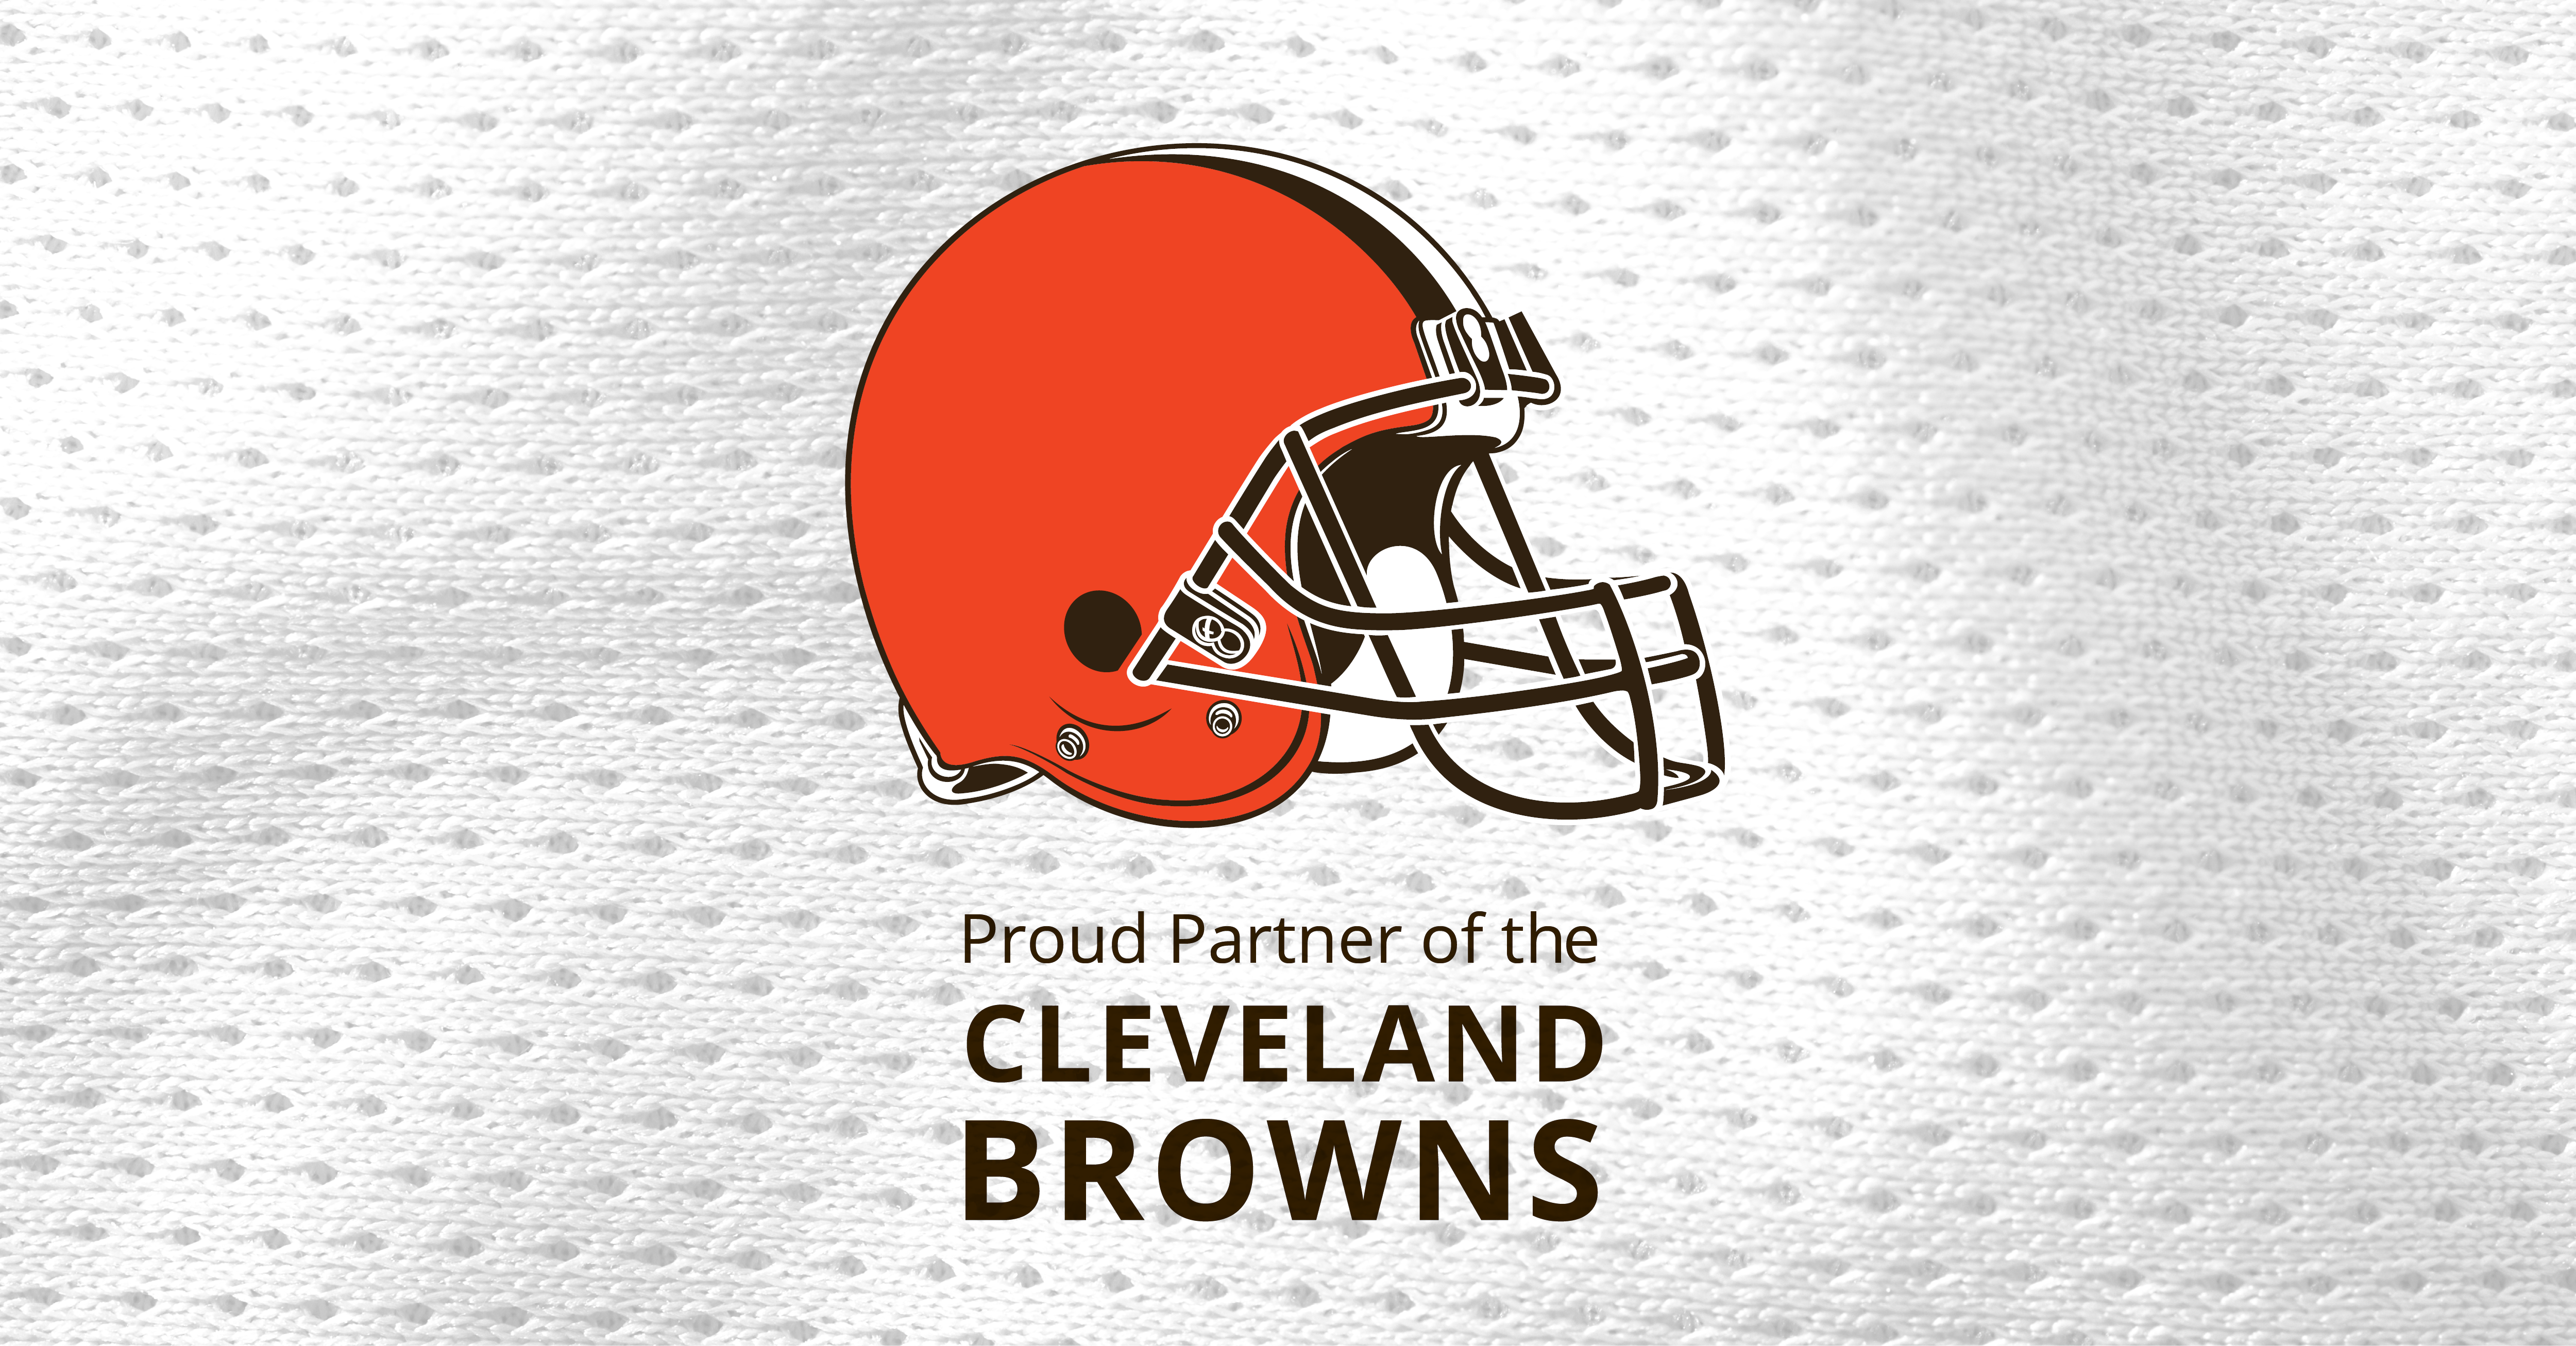 b8a4d1cd Electronic Merchant Systems, Cleveland Browns announce partnership